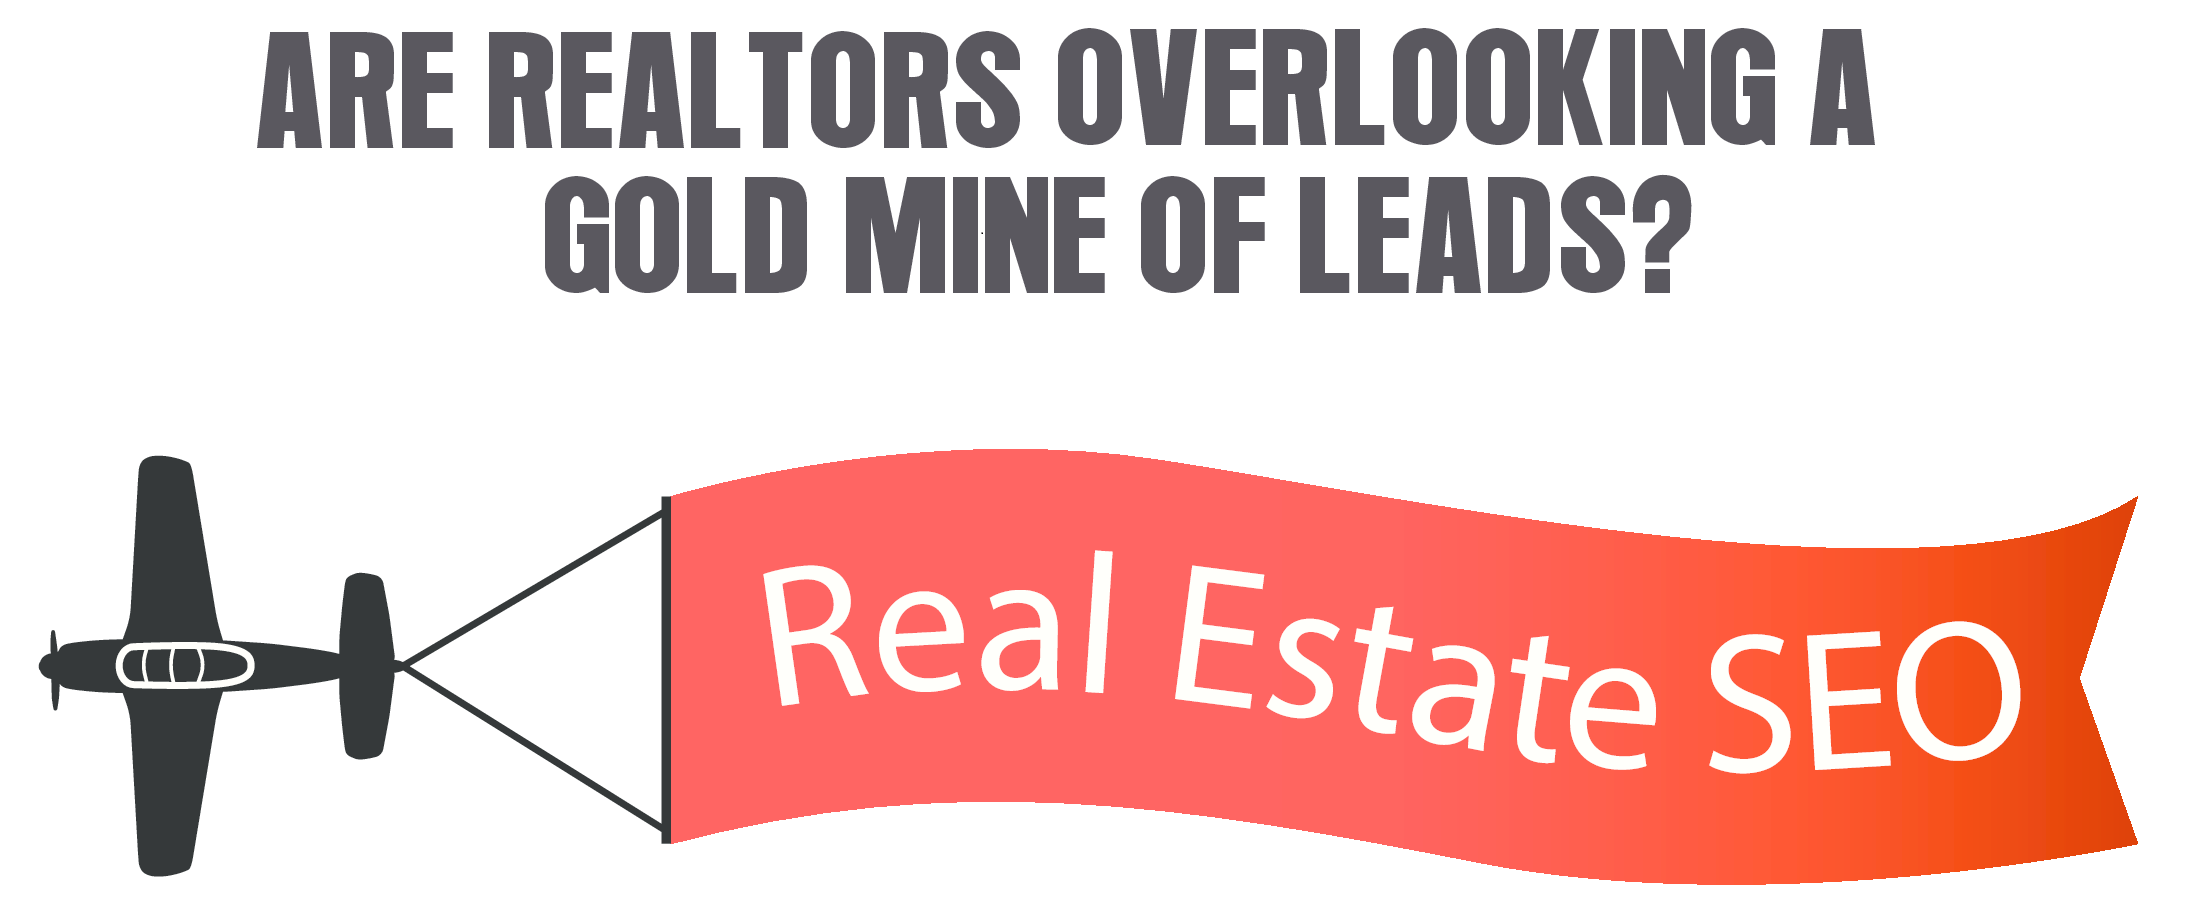 Why Realtors haven't been able to turn SEO into a major source of leads